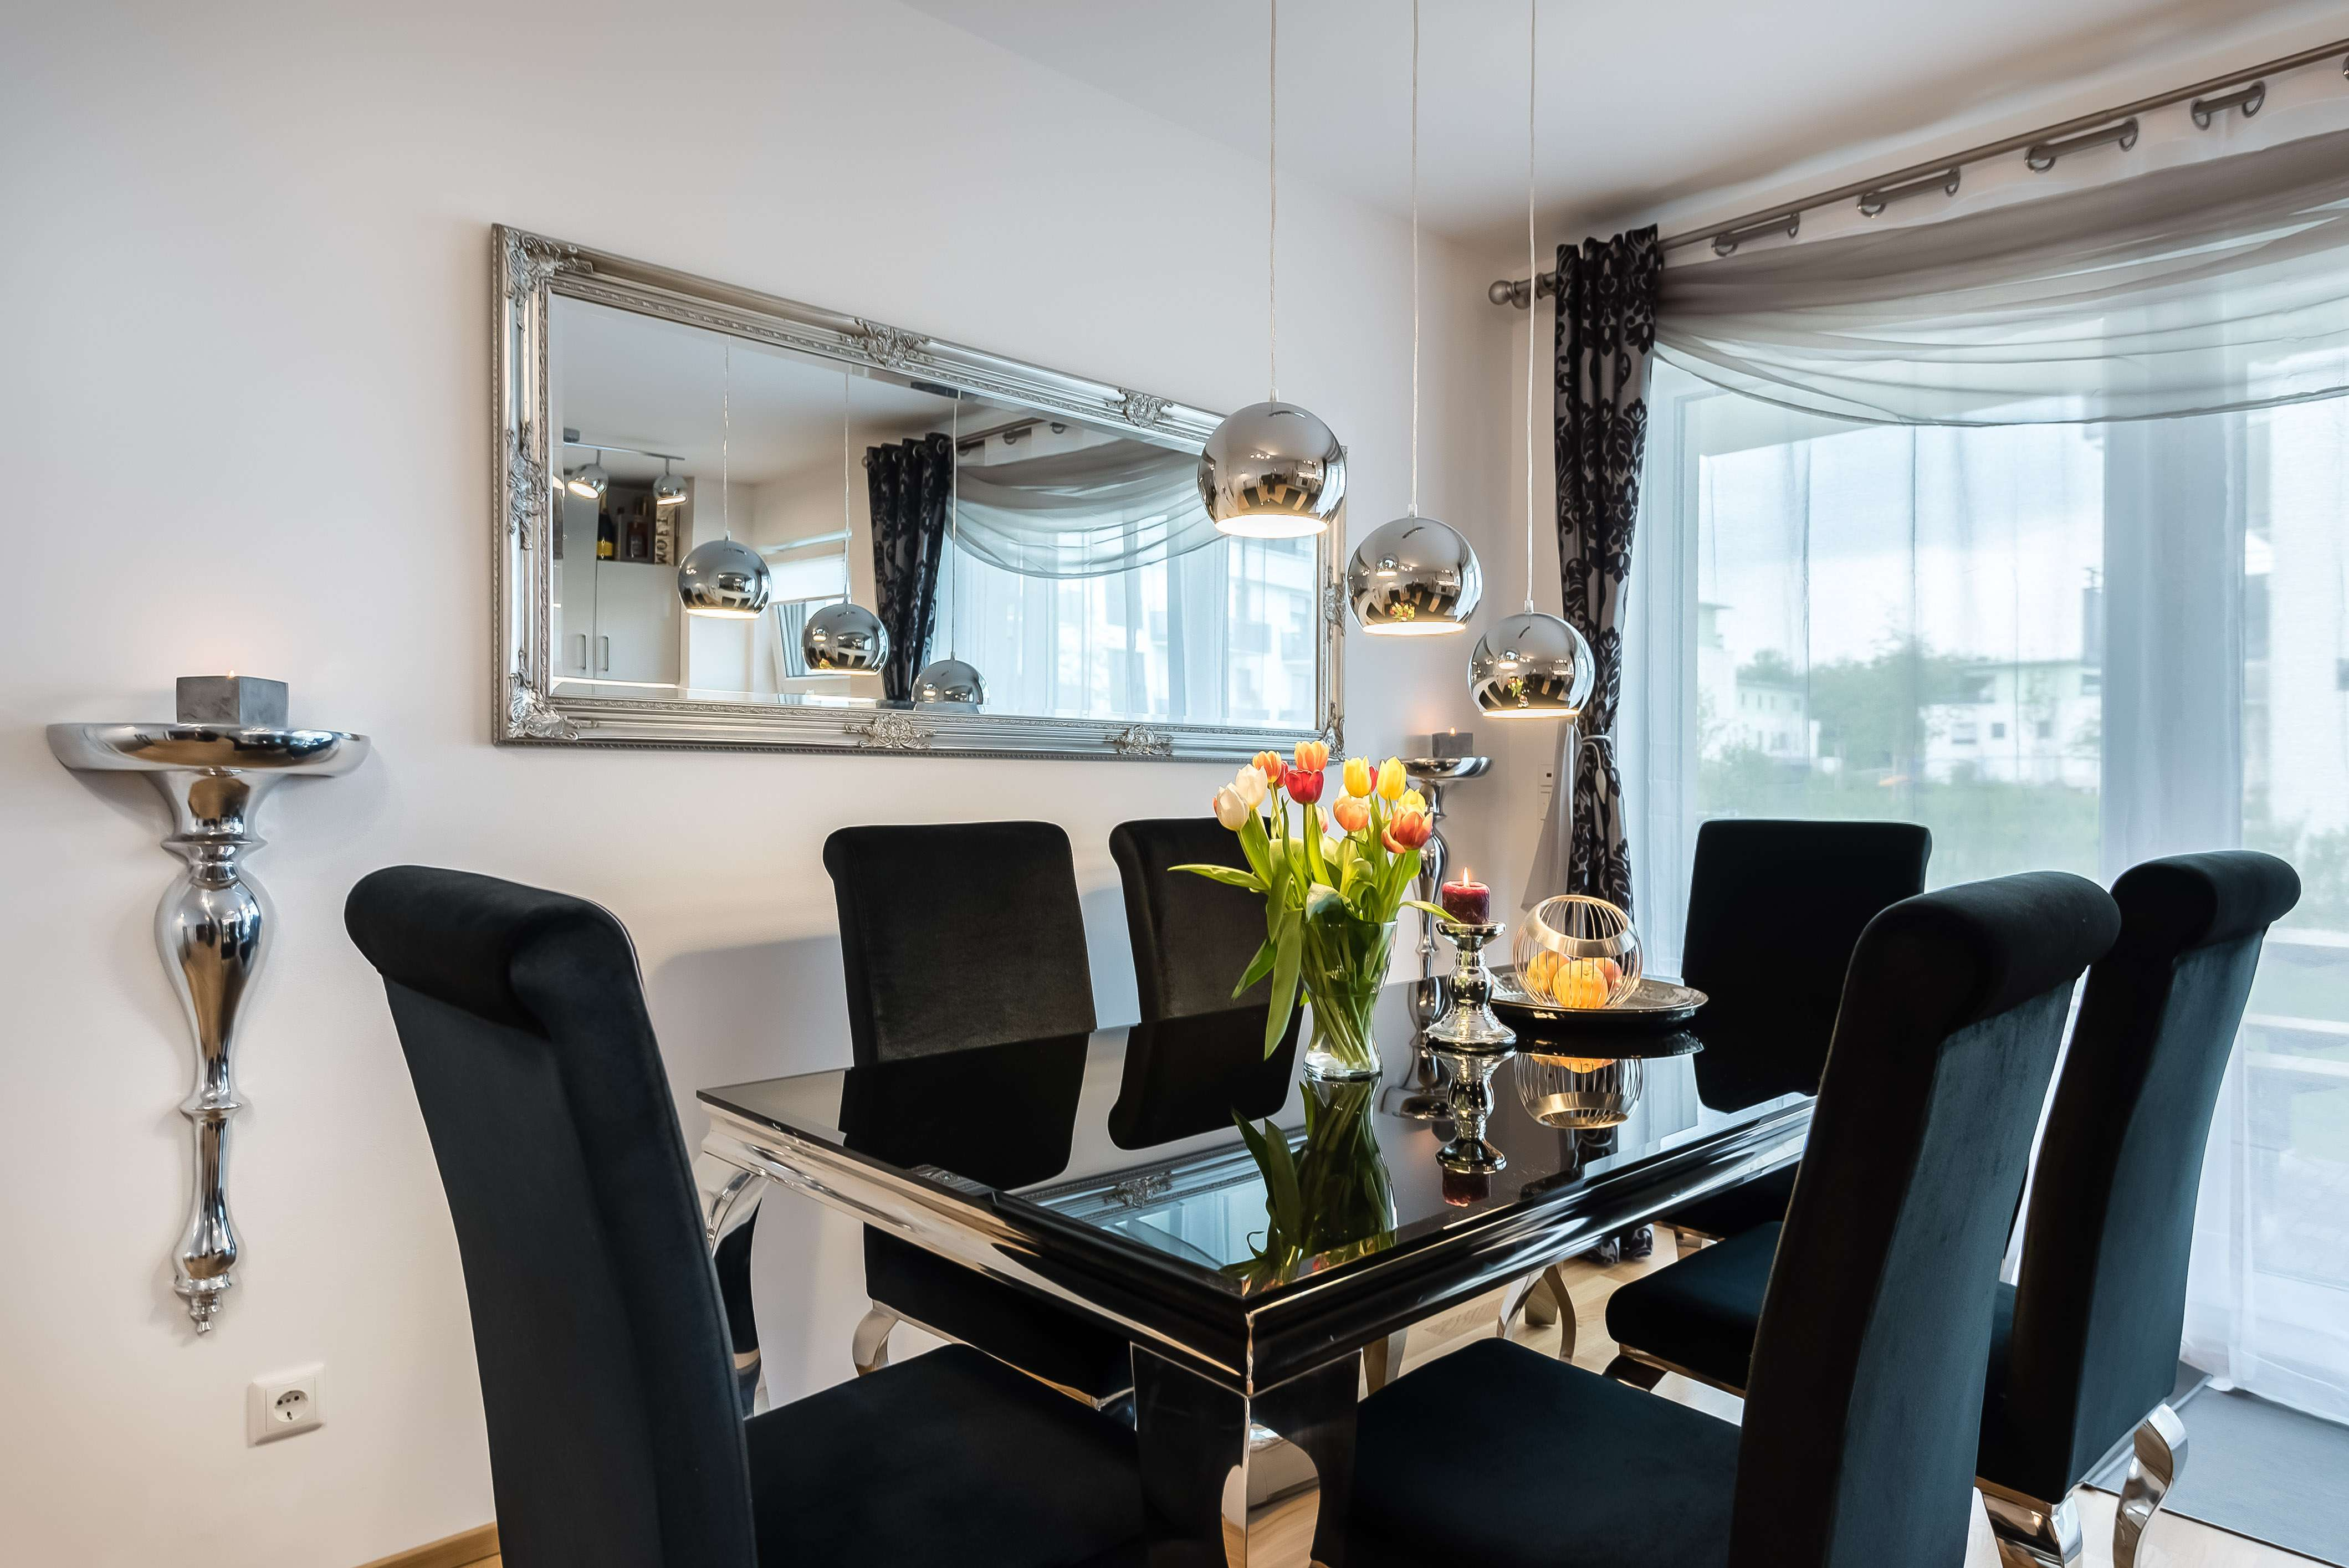 Newly build and completely furnished apartment in Unterhaching. !!!All inclusive offer!!!